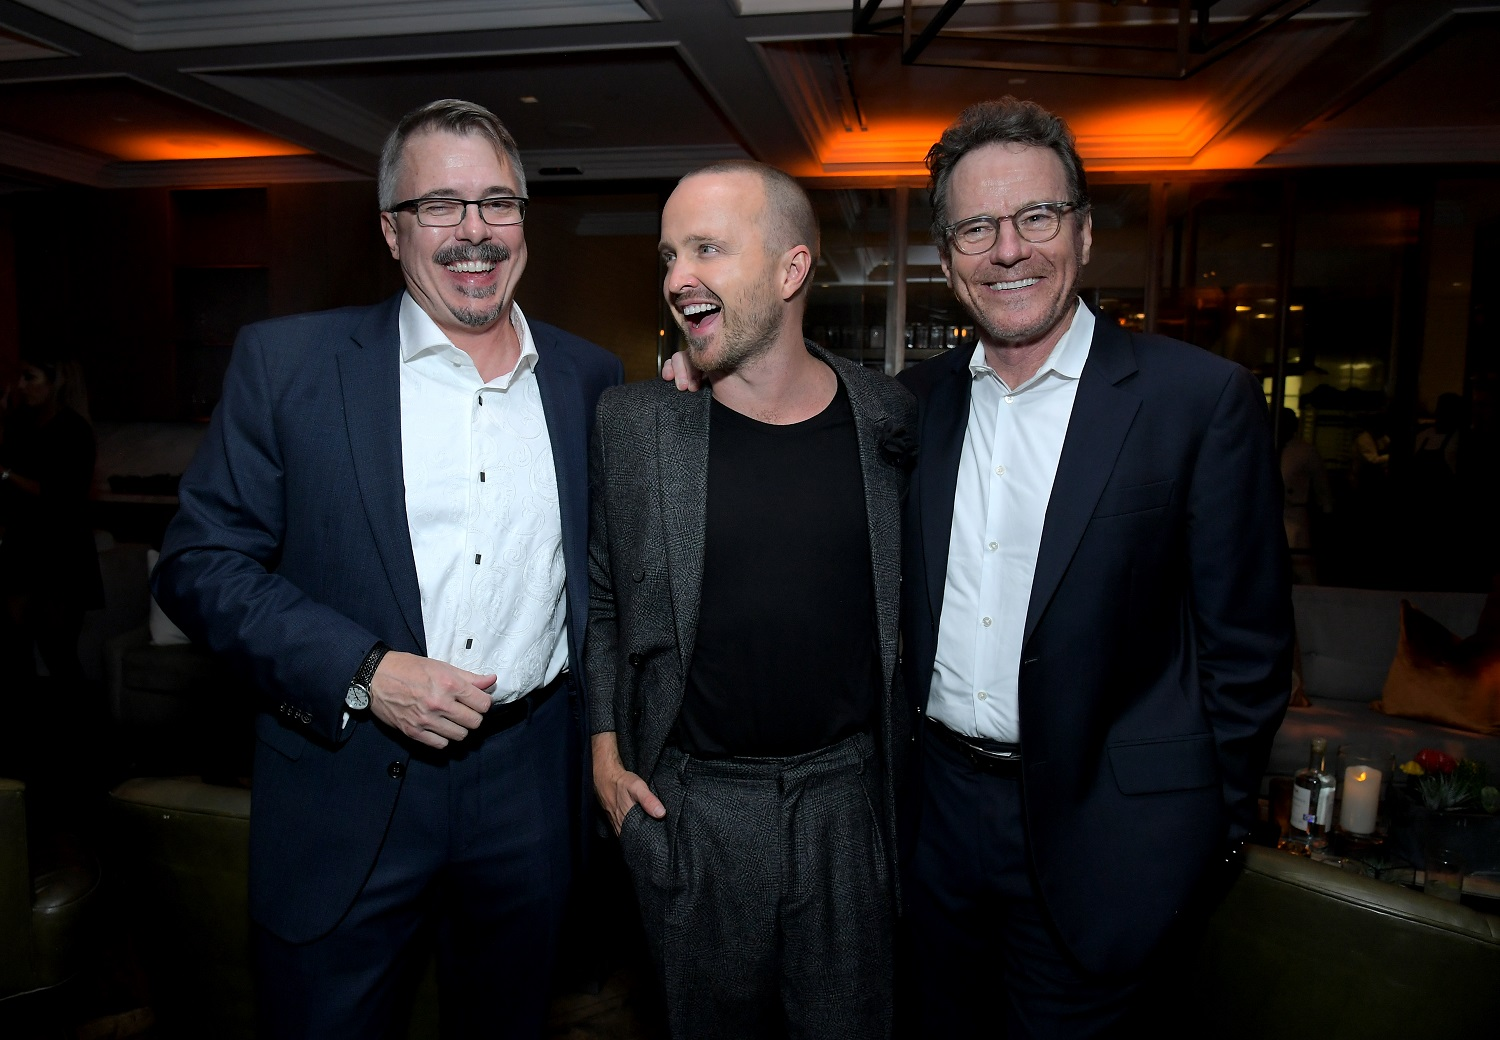 Breaking Bad writer Vince Gilligan, and stars Aaron Paul and Bryan Cranston